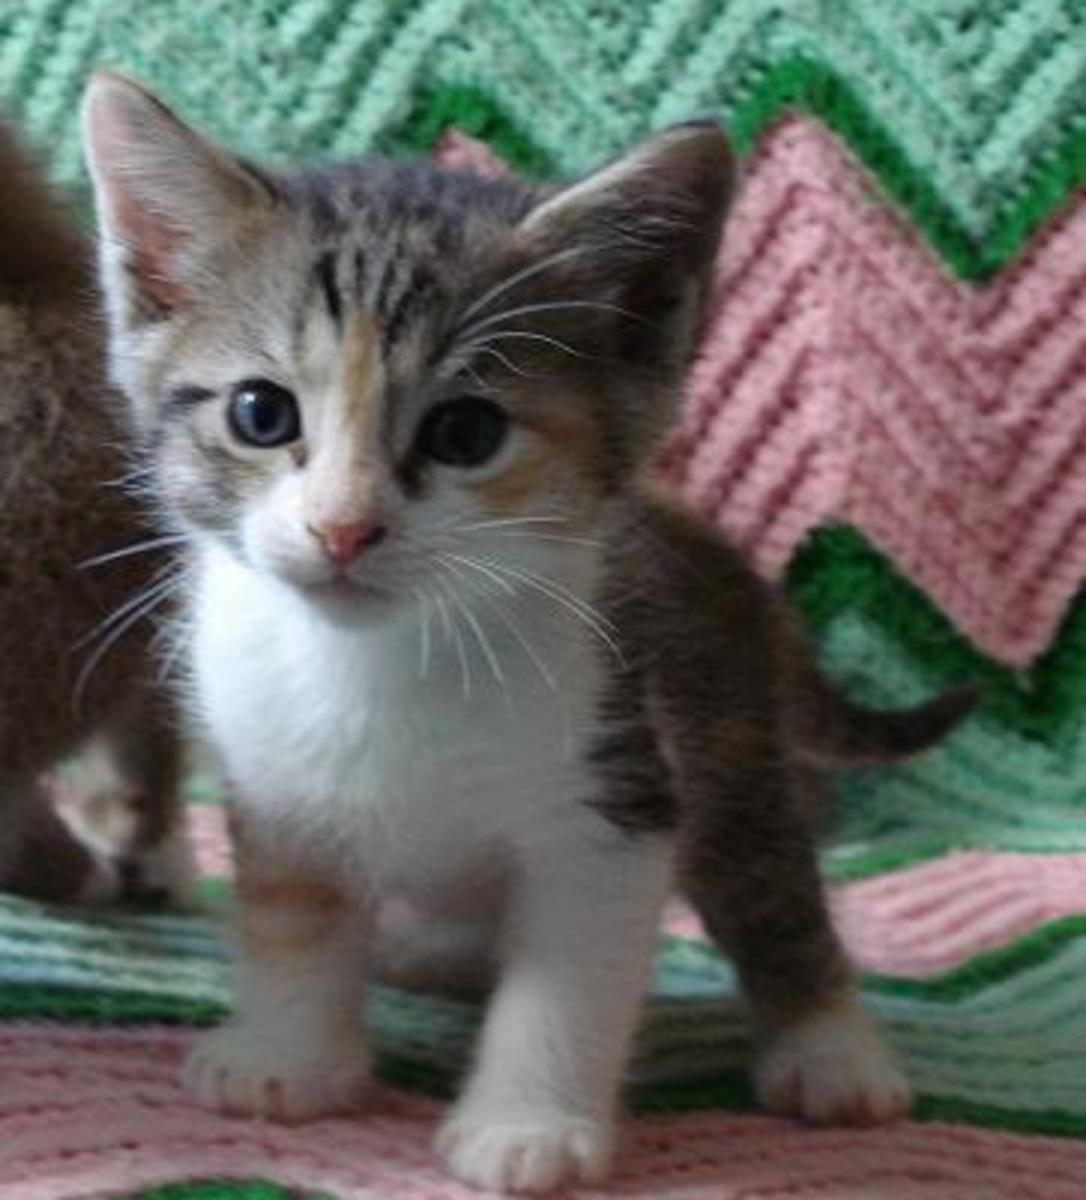 cats caging why cat kittens litter box calico necessary weeks sometimes stay female kitten cage pethelpful tiny always animal habits